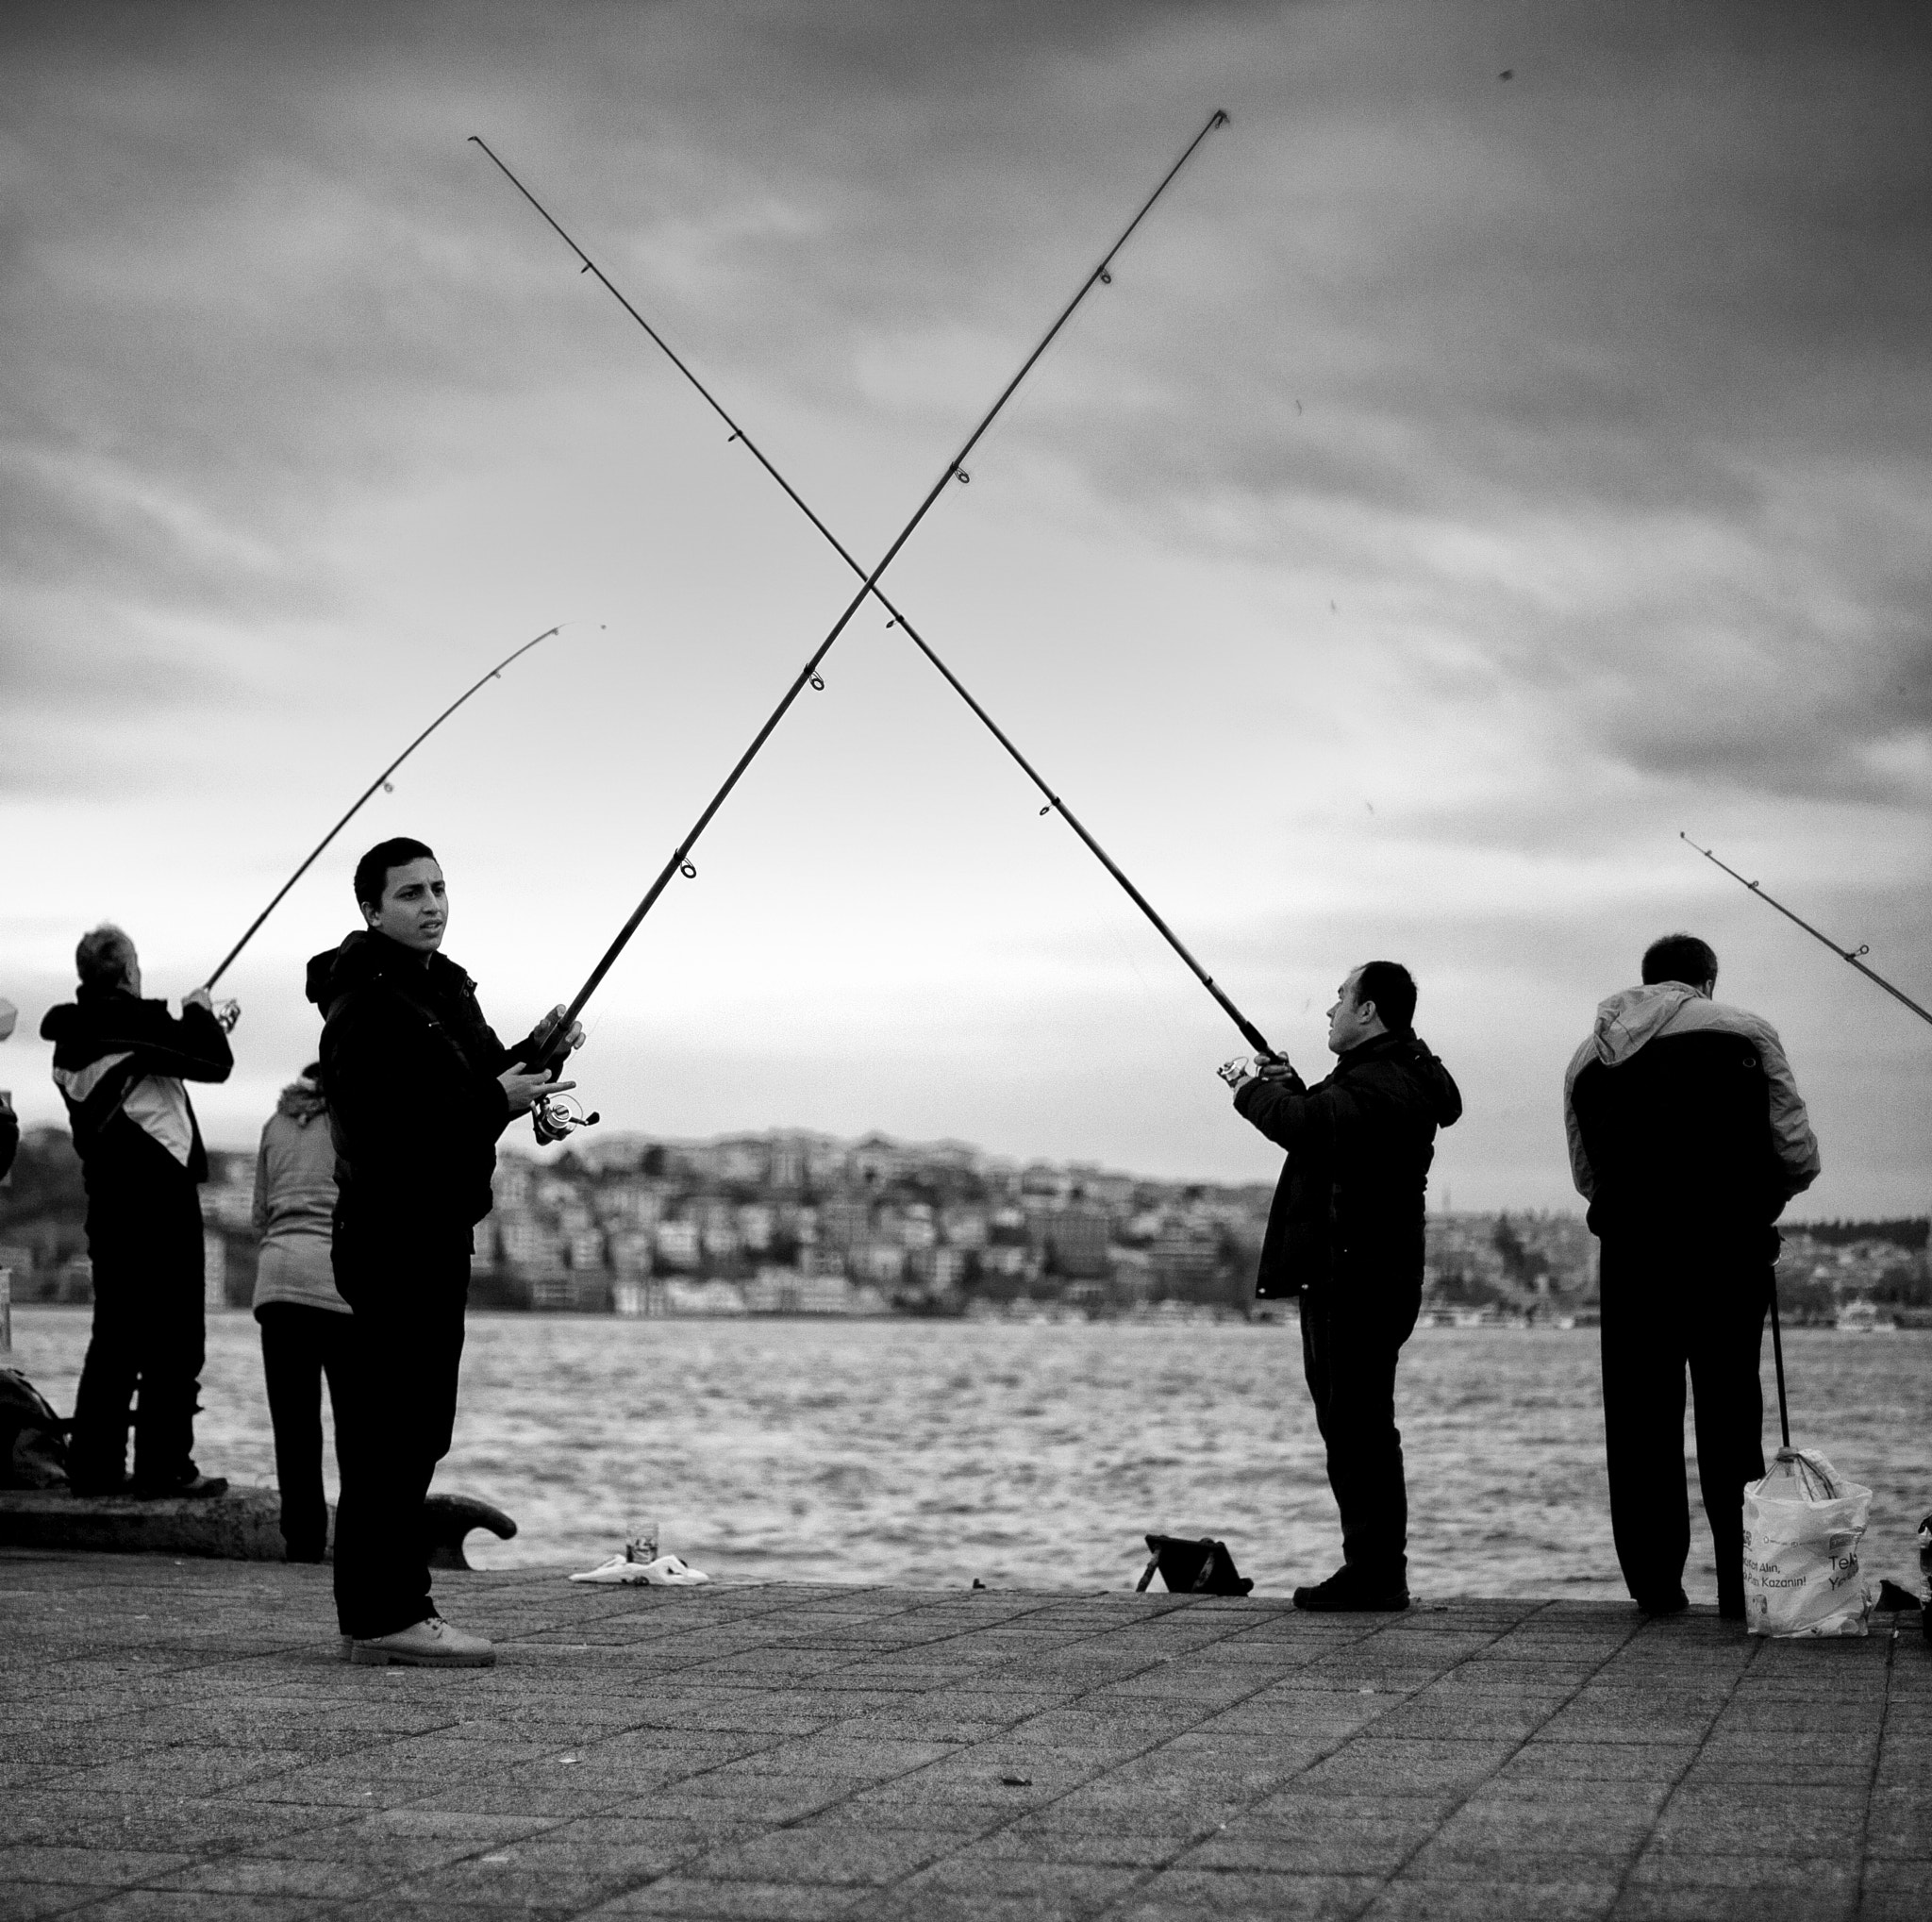 Photograph Untitled by Onur Pinar on 500px